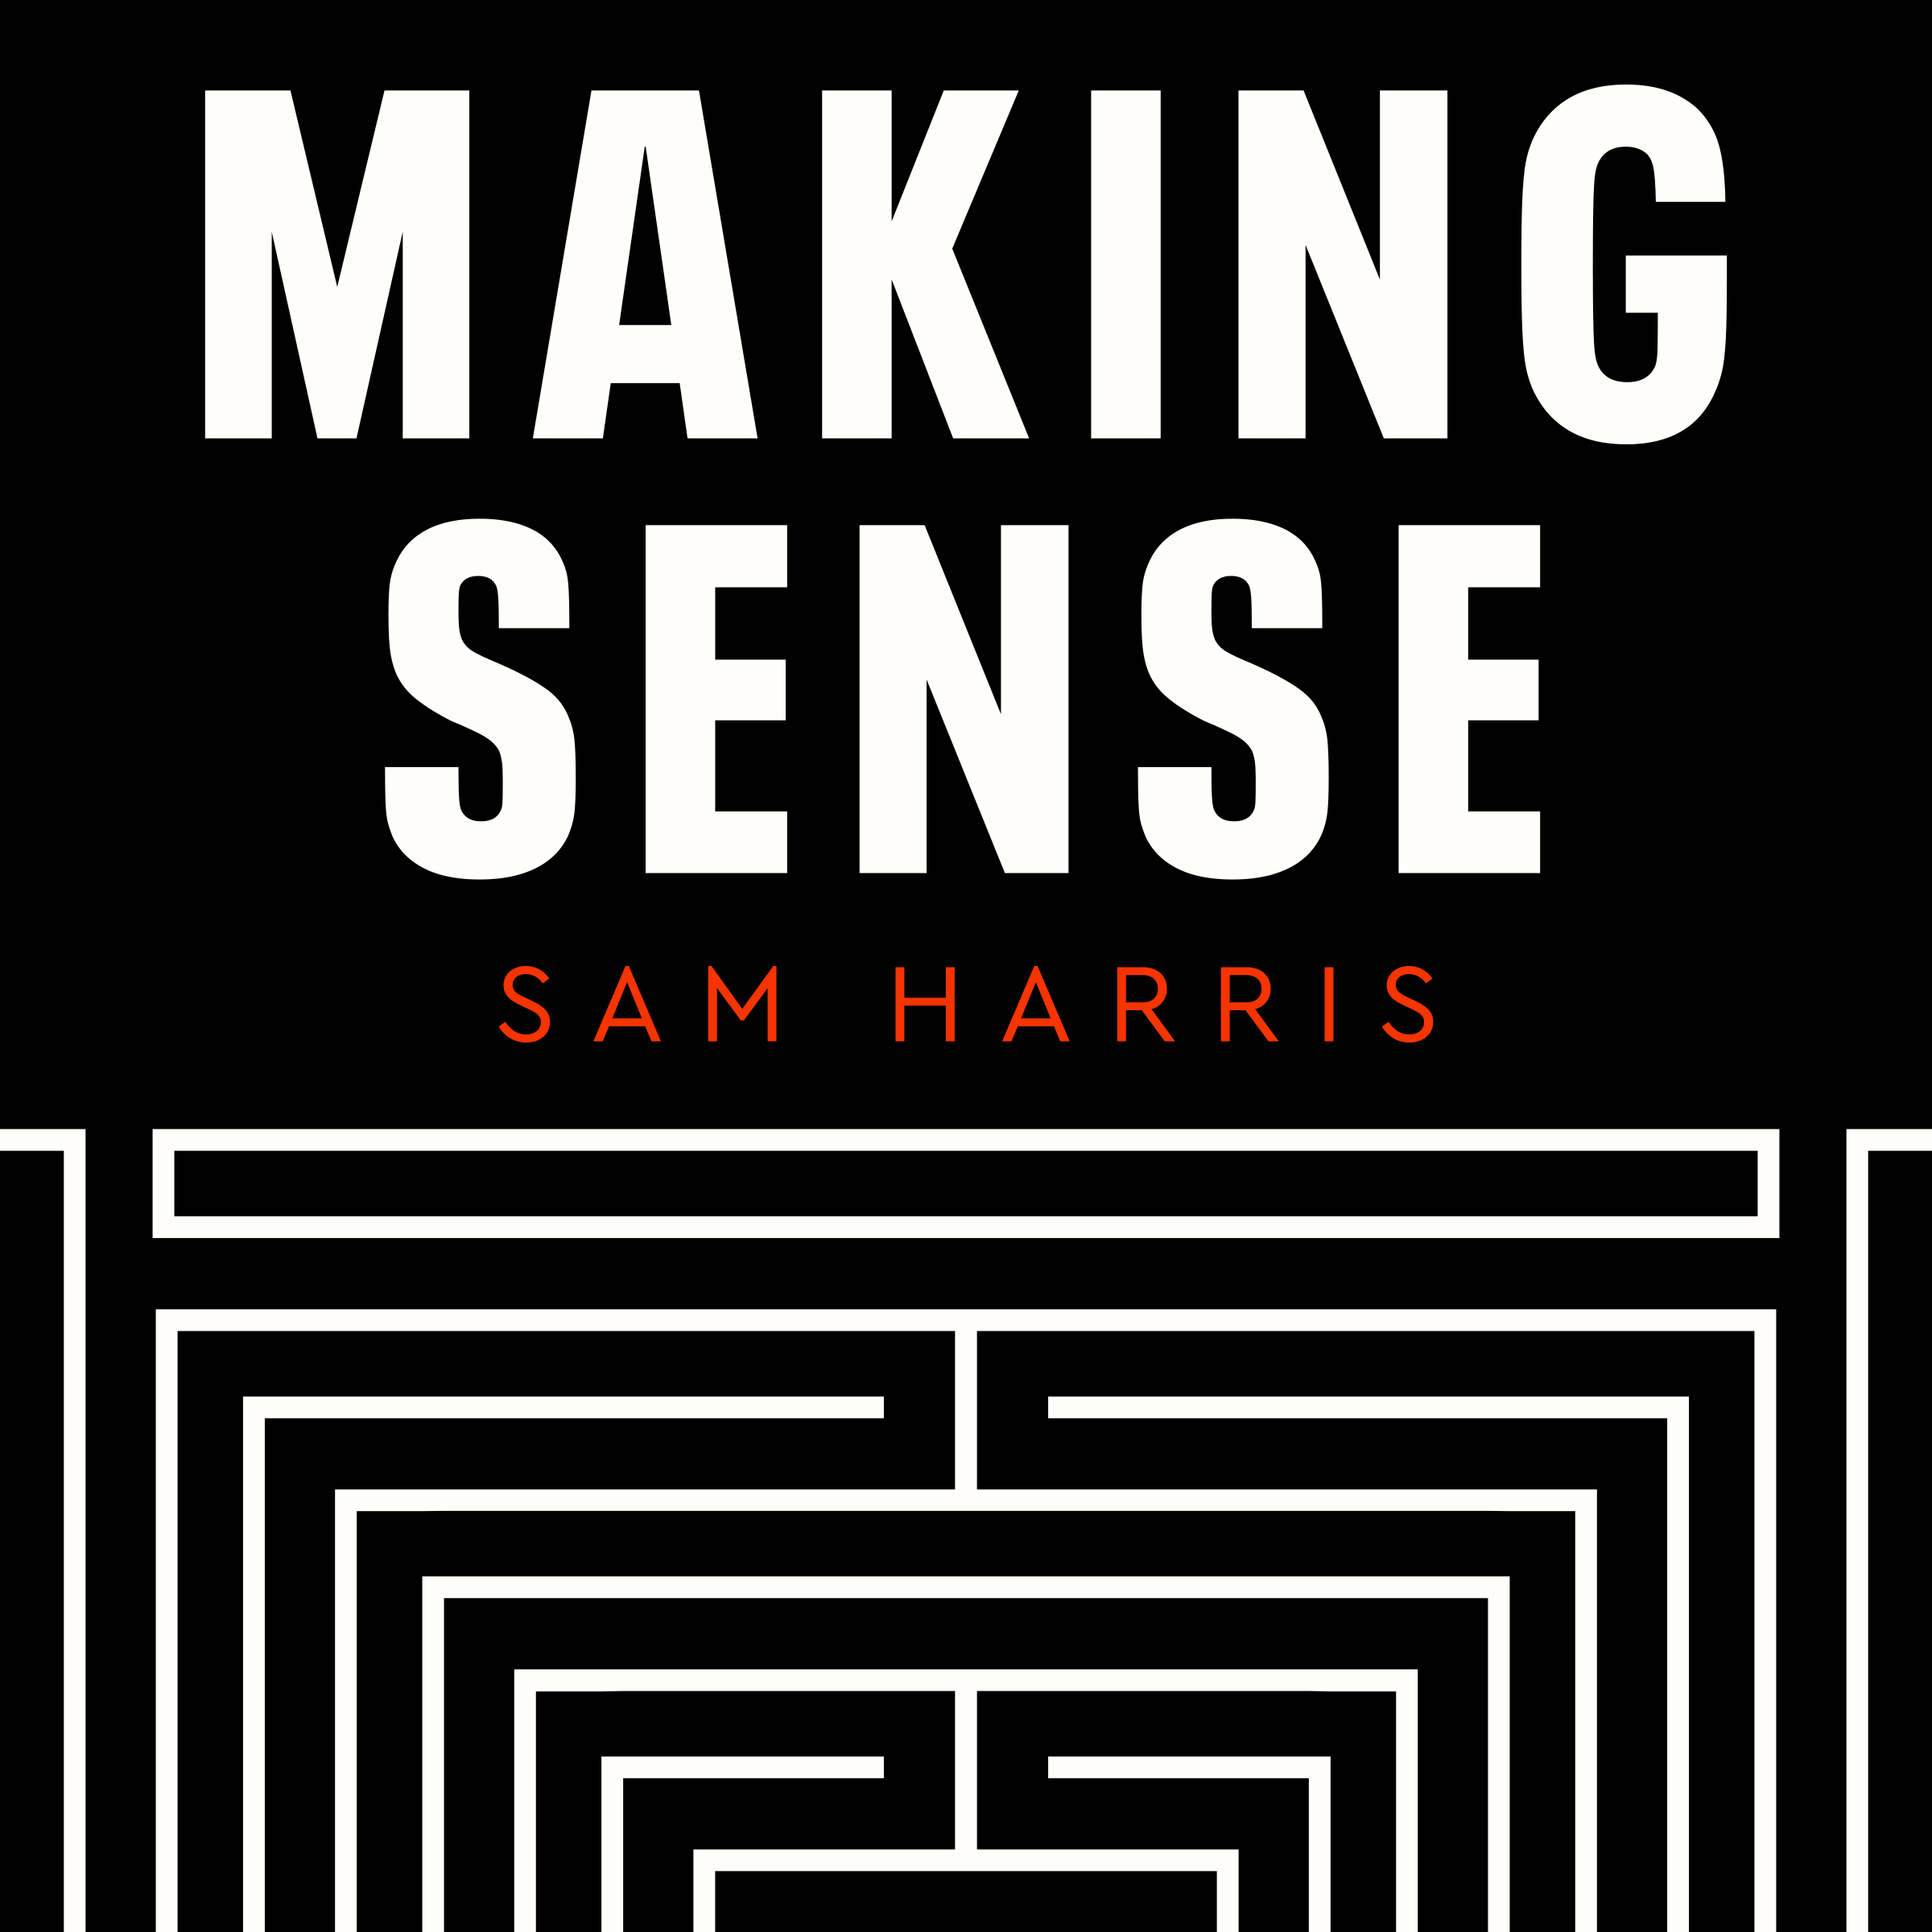 podcast thumbnail for 'Making Sense with Sam Harris'